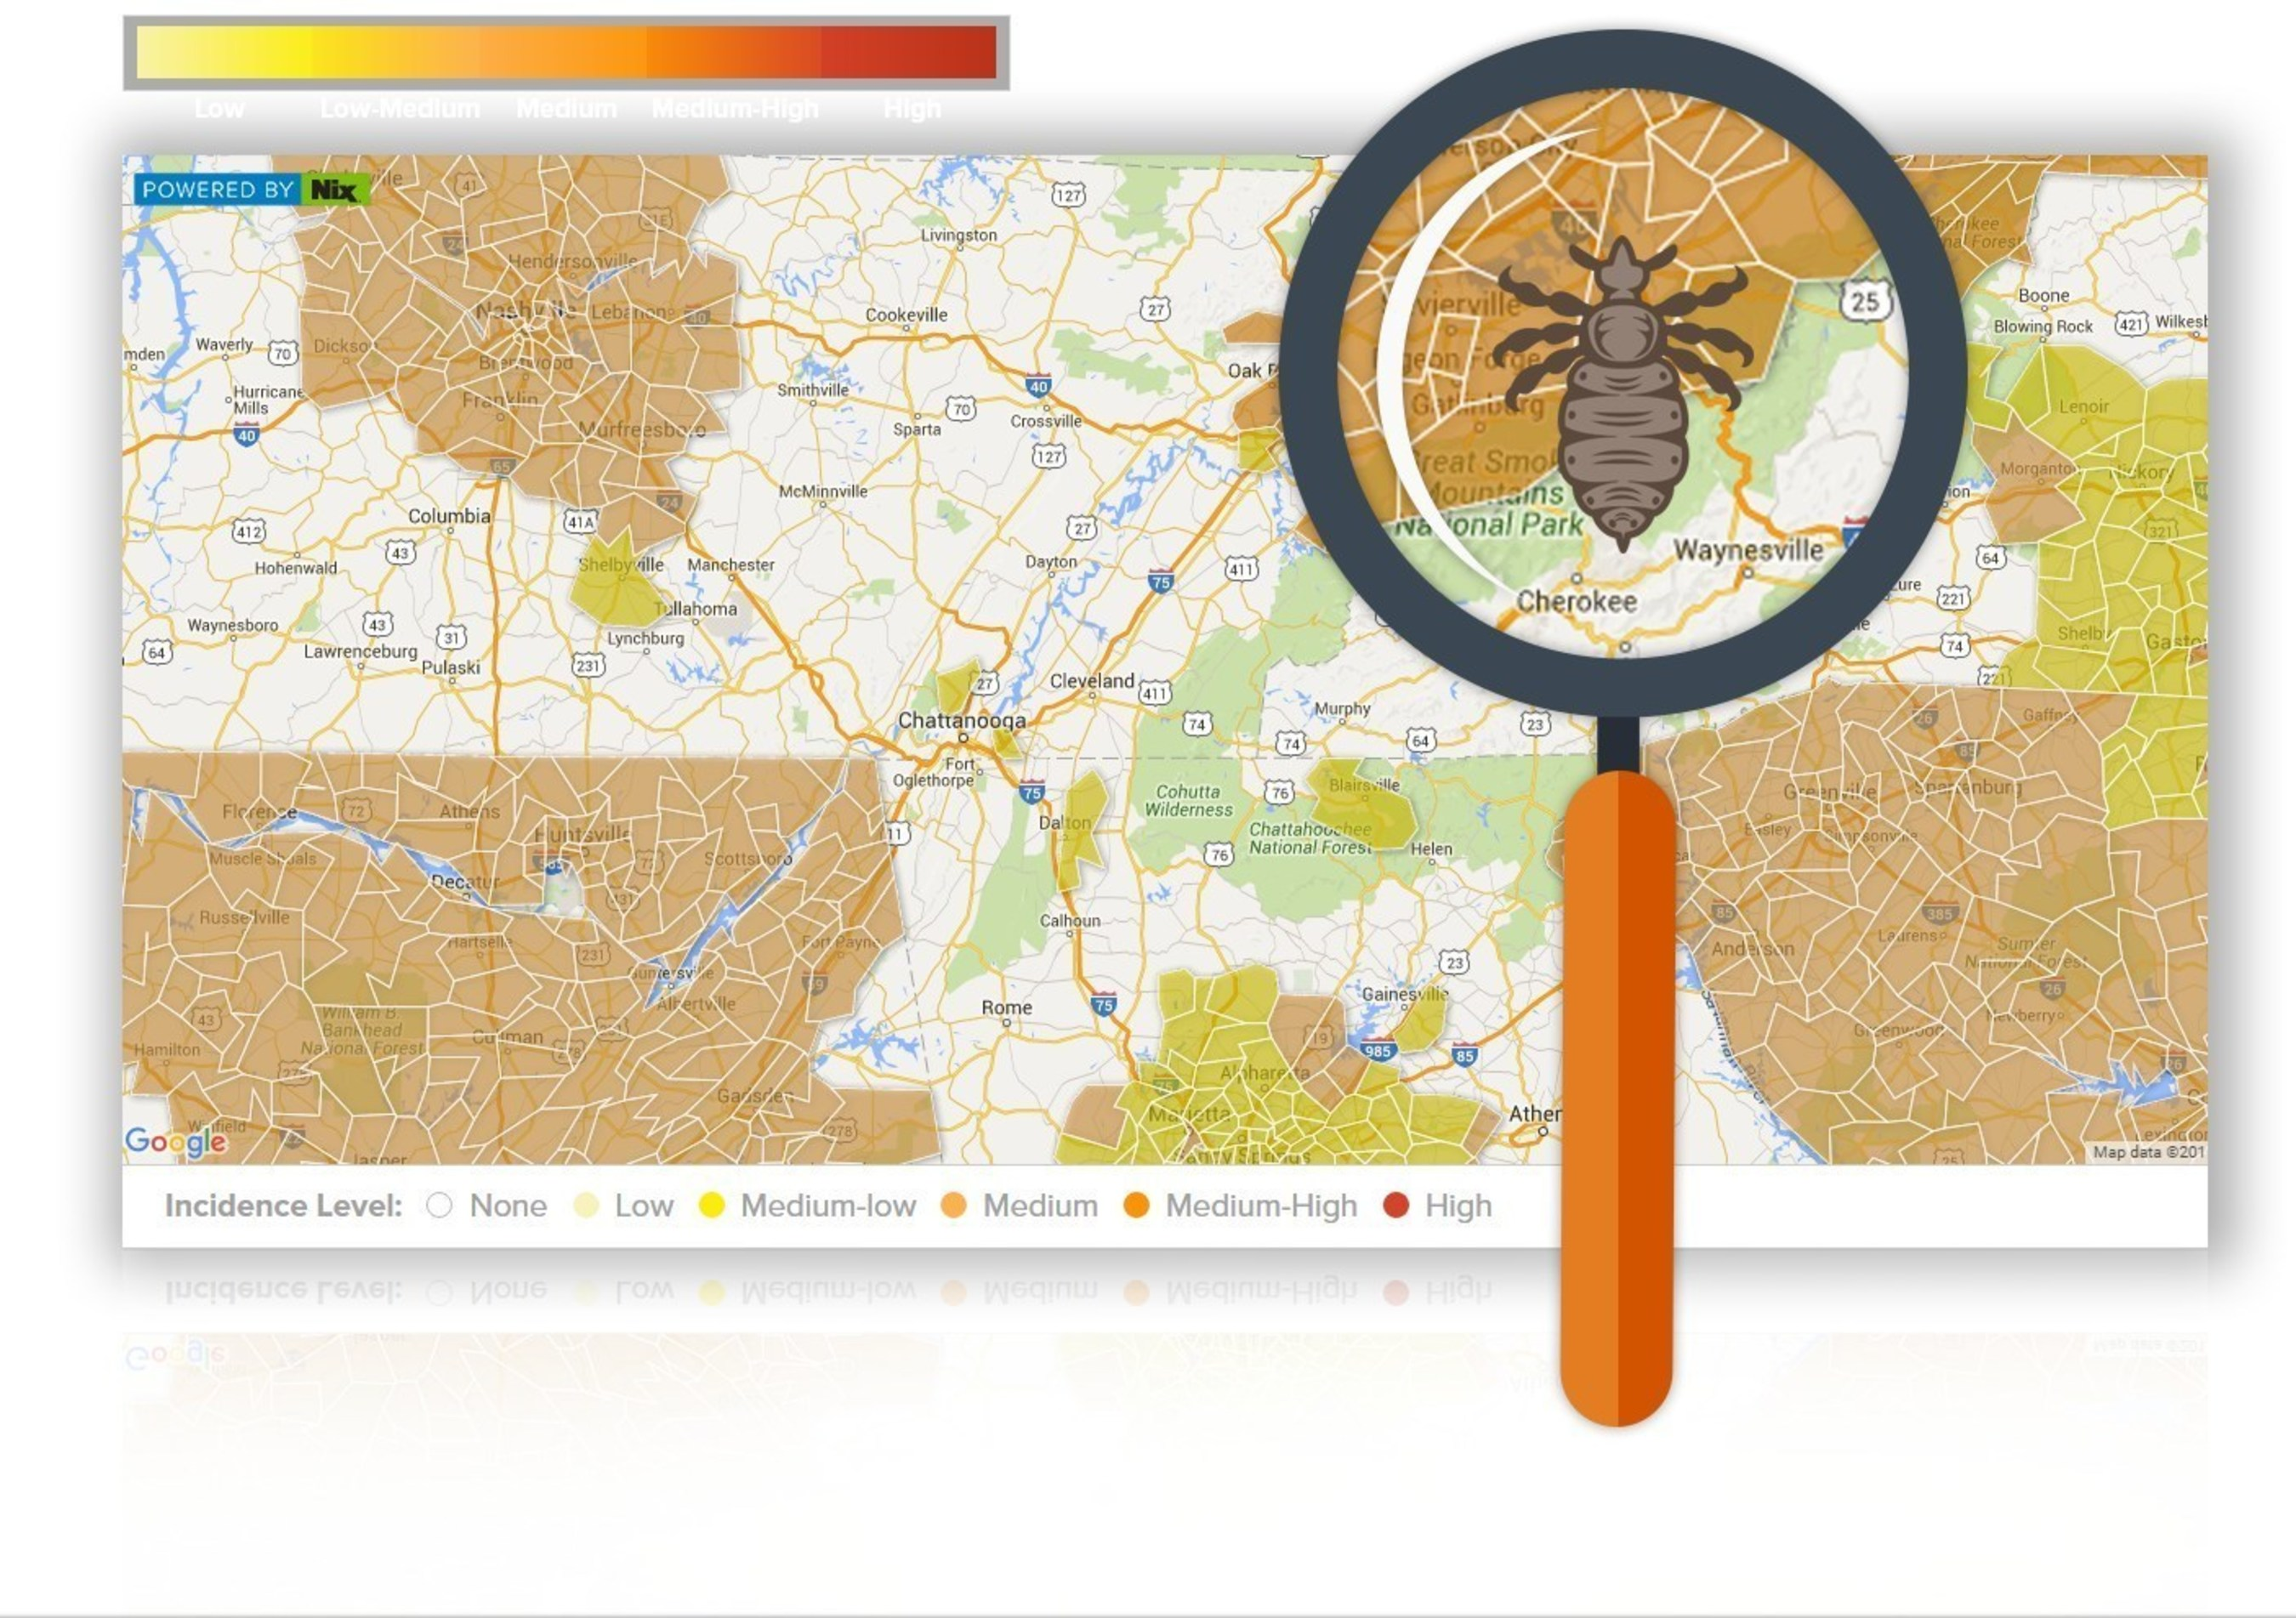 Nix' Launches First-Ever Lice Tracker